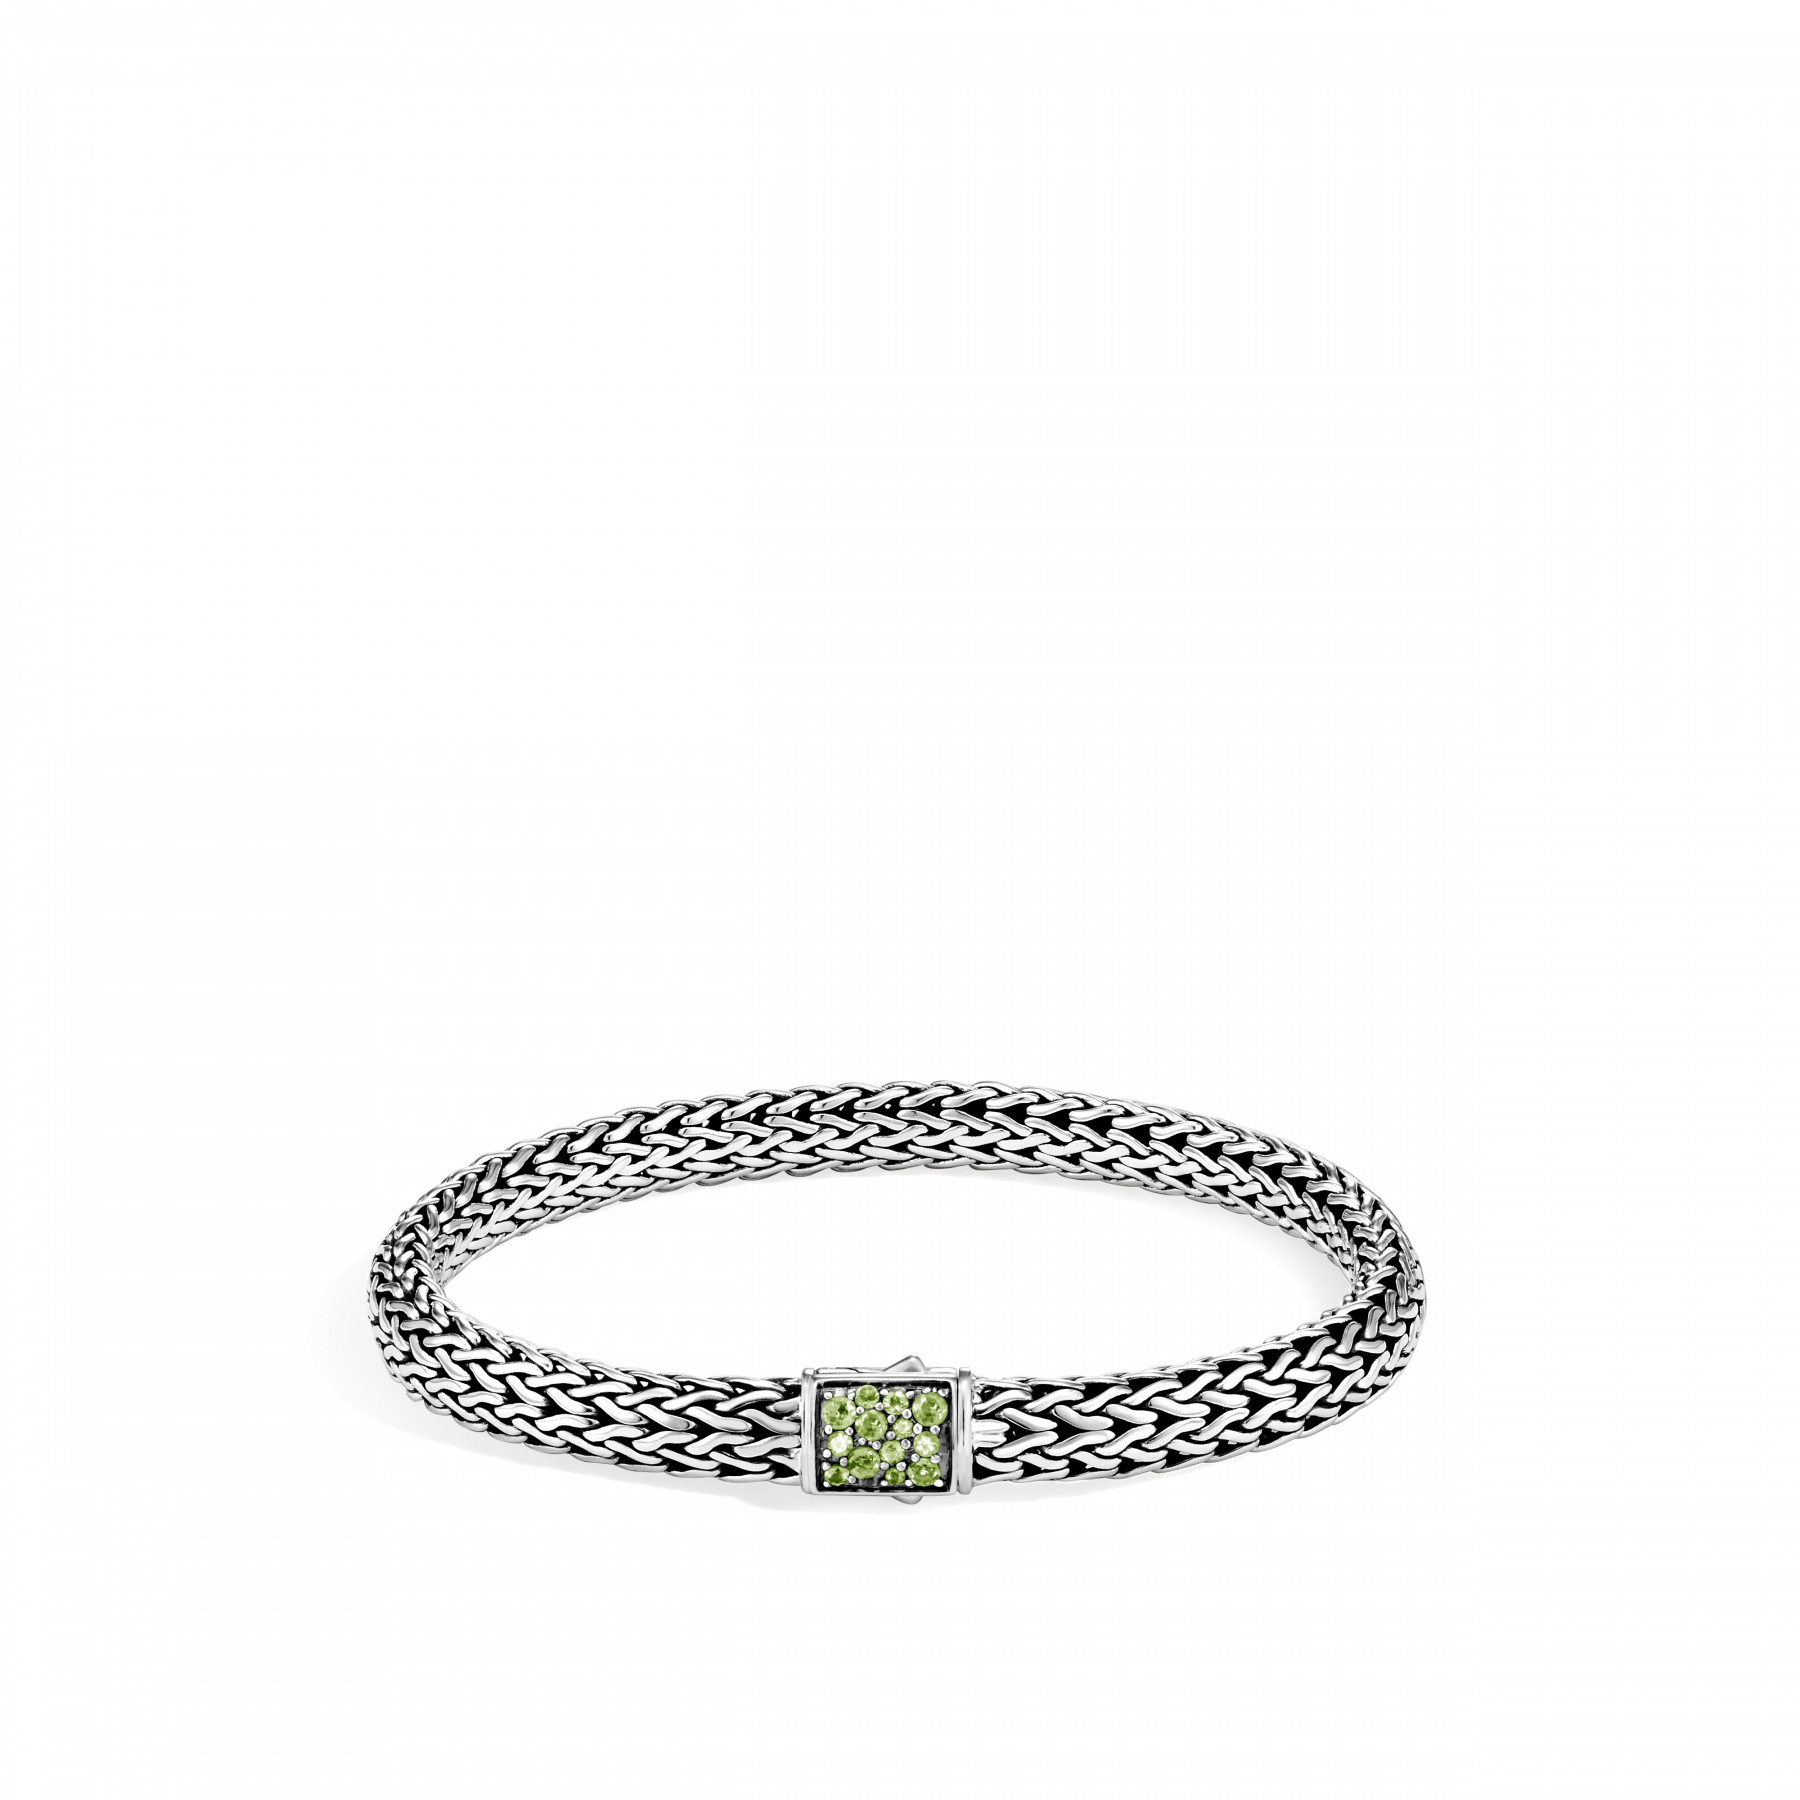 John Hardy Classic Chain Diamond and Peridot Bracelet - 6.5MM FRONT IMAGE